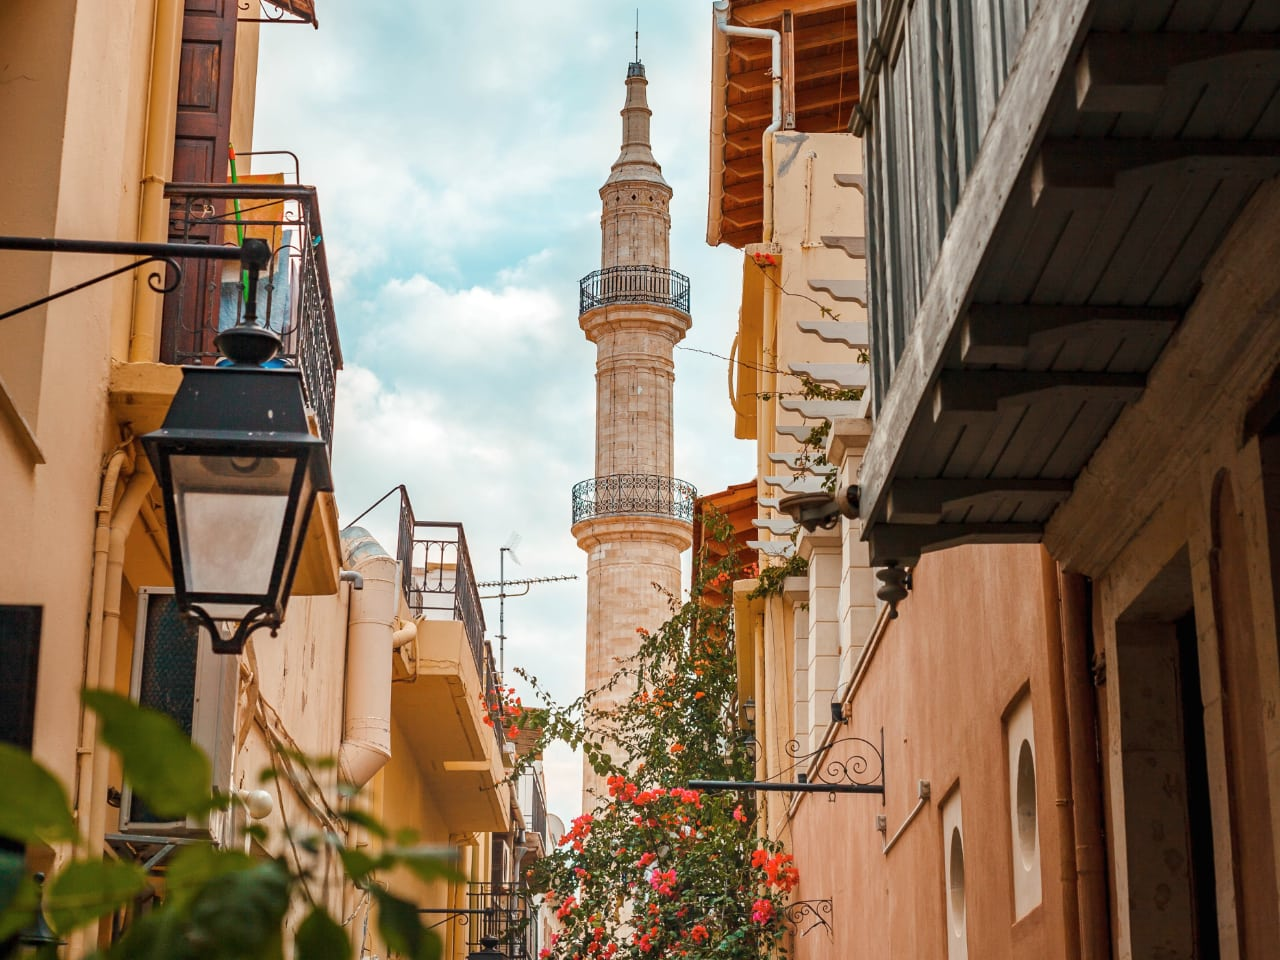 Photo of Day : The Picturesque Town of Rethymno or Rethimno